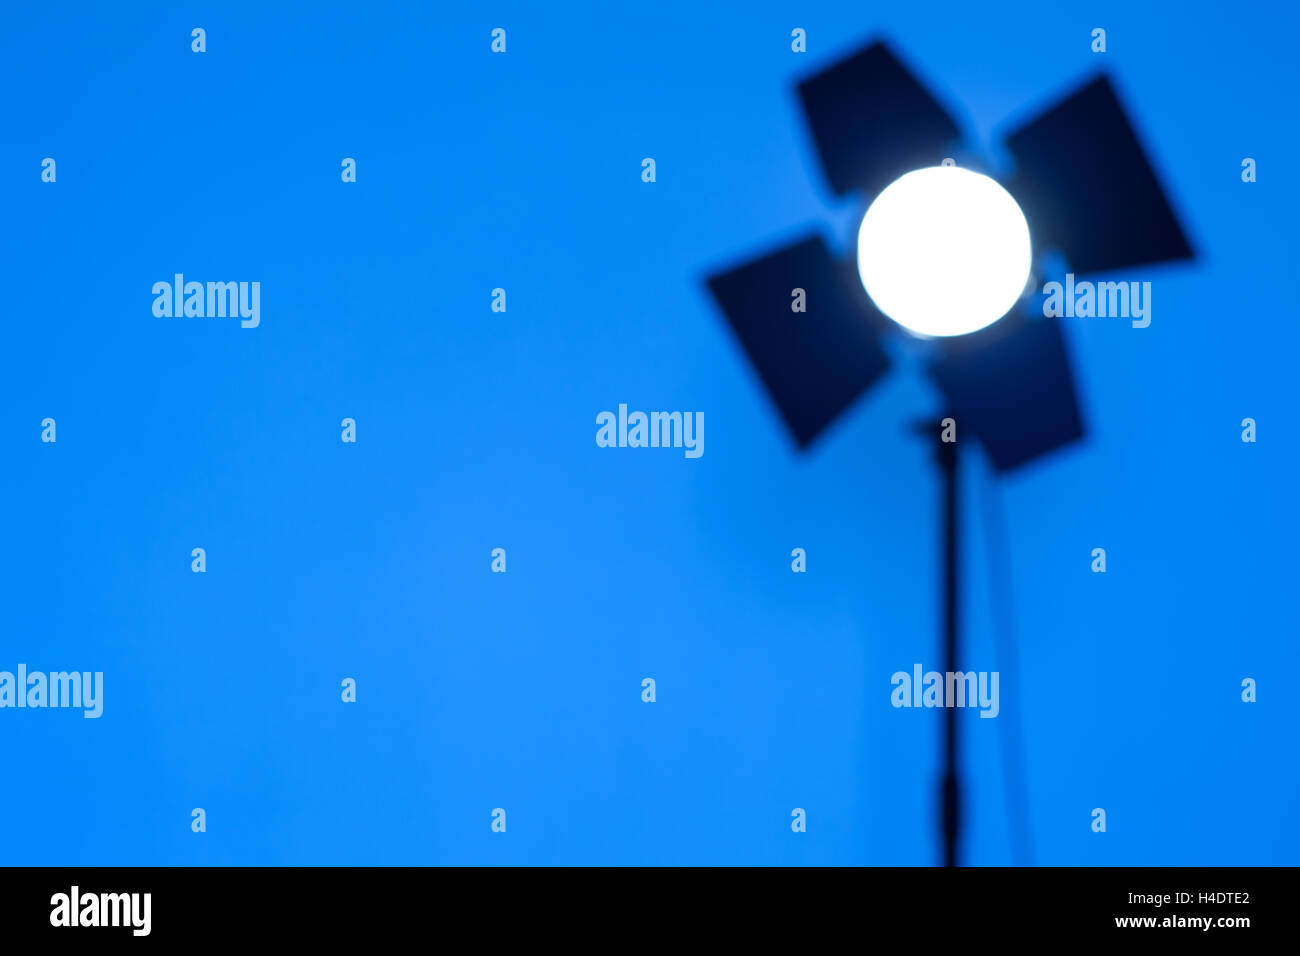 Photographic Equipment for photo shoots. - Stock Image